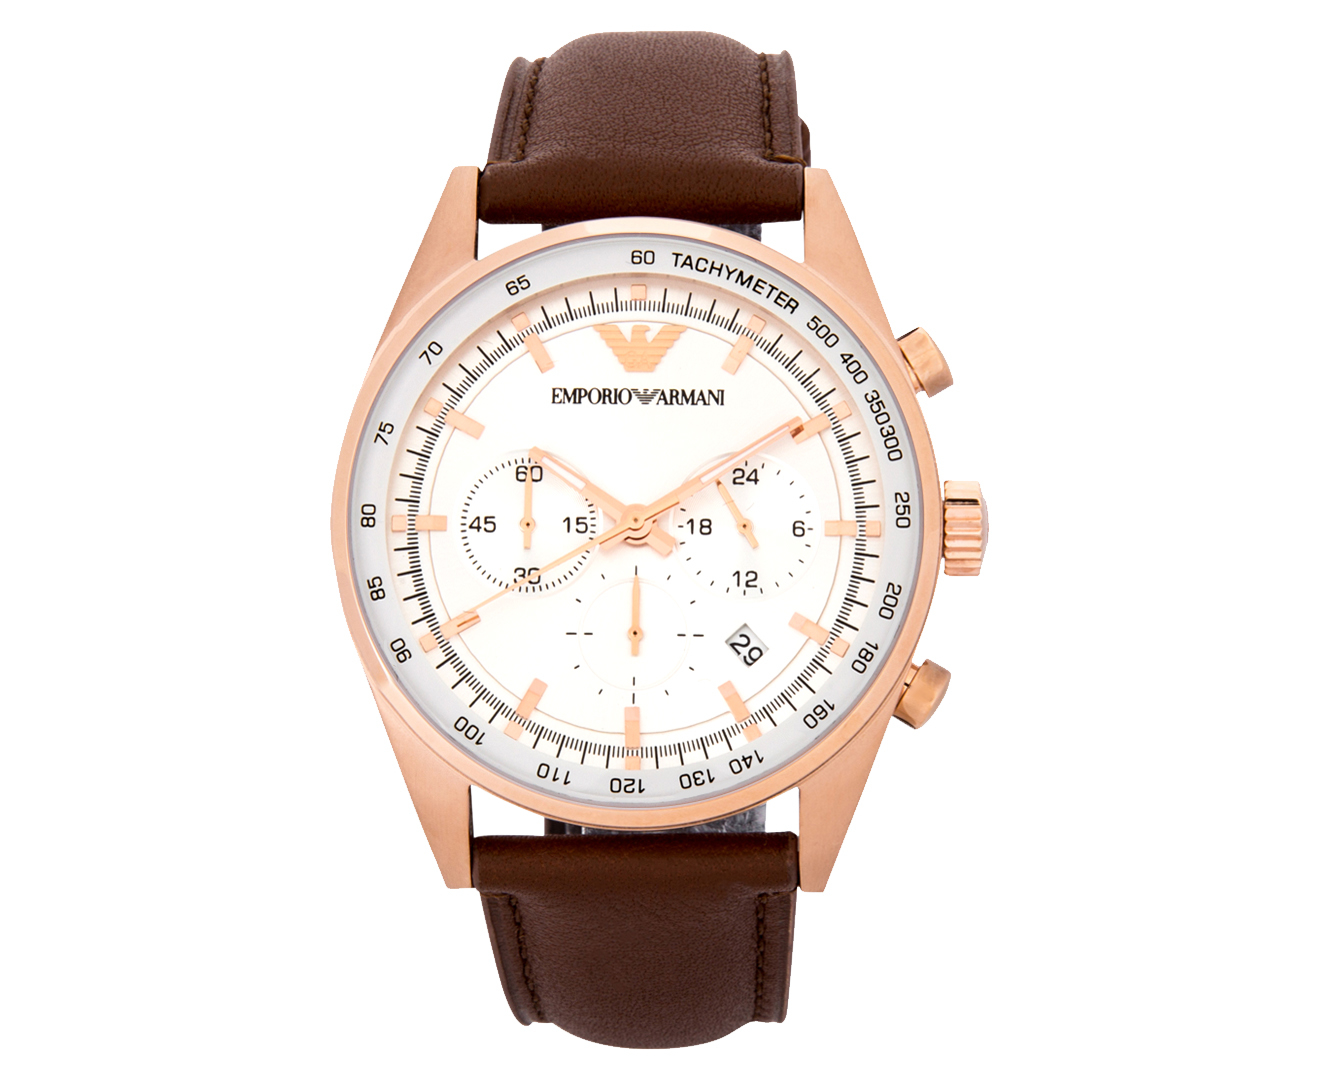 785a077c554 Image is loading Emporio-Armani-Men-039-s-43mm-AR5995-Leather-. NEW Emporio  Armani Womens Rose Gold Tone Brown Saffiano Leather Strap Watch